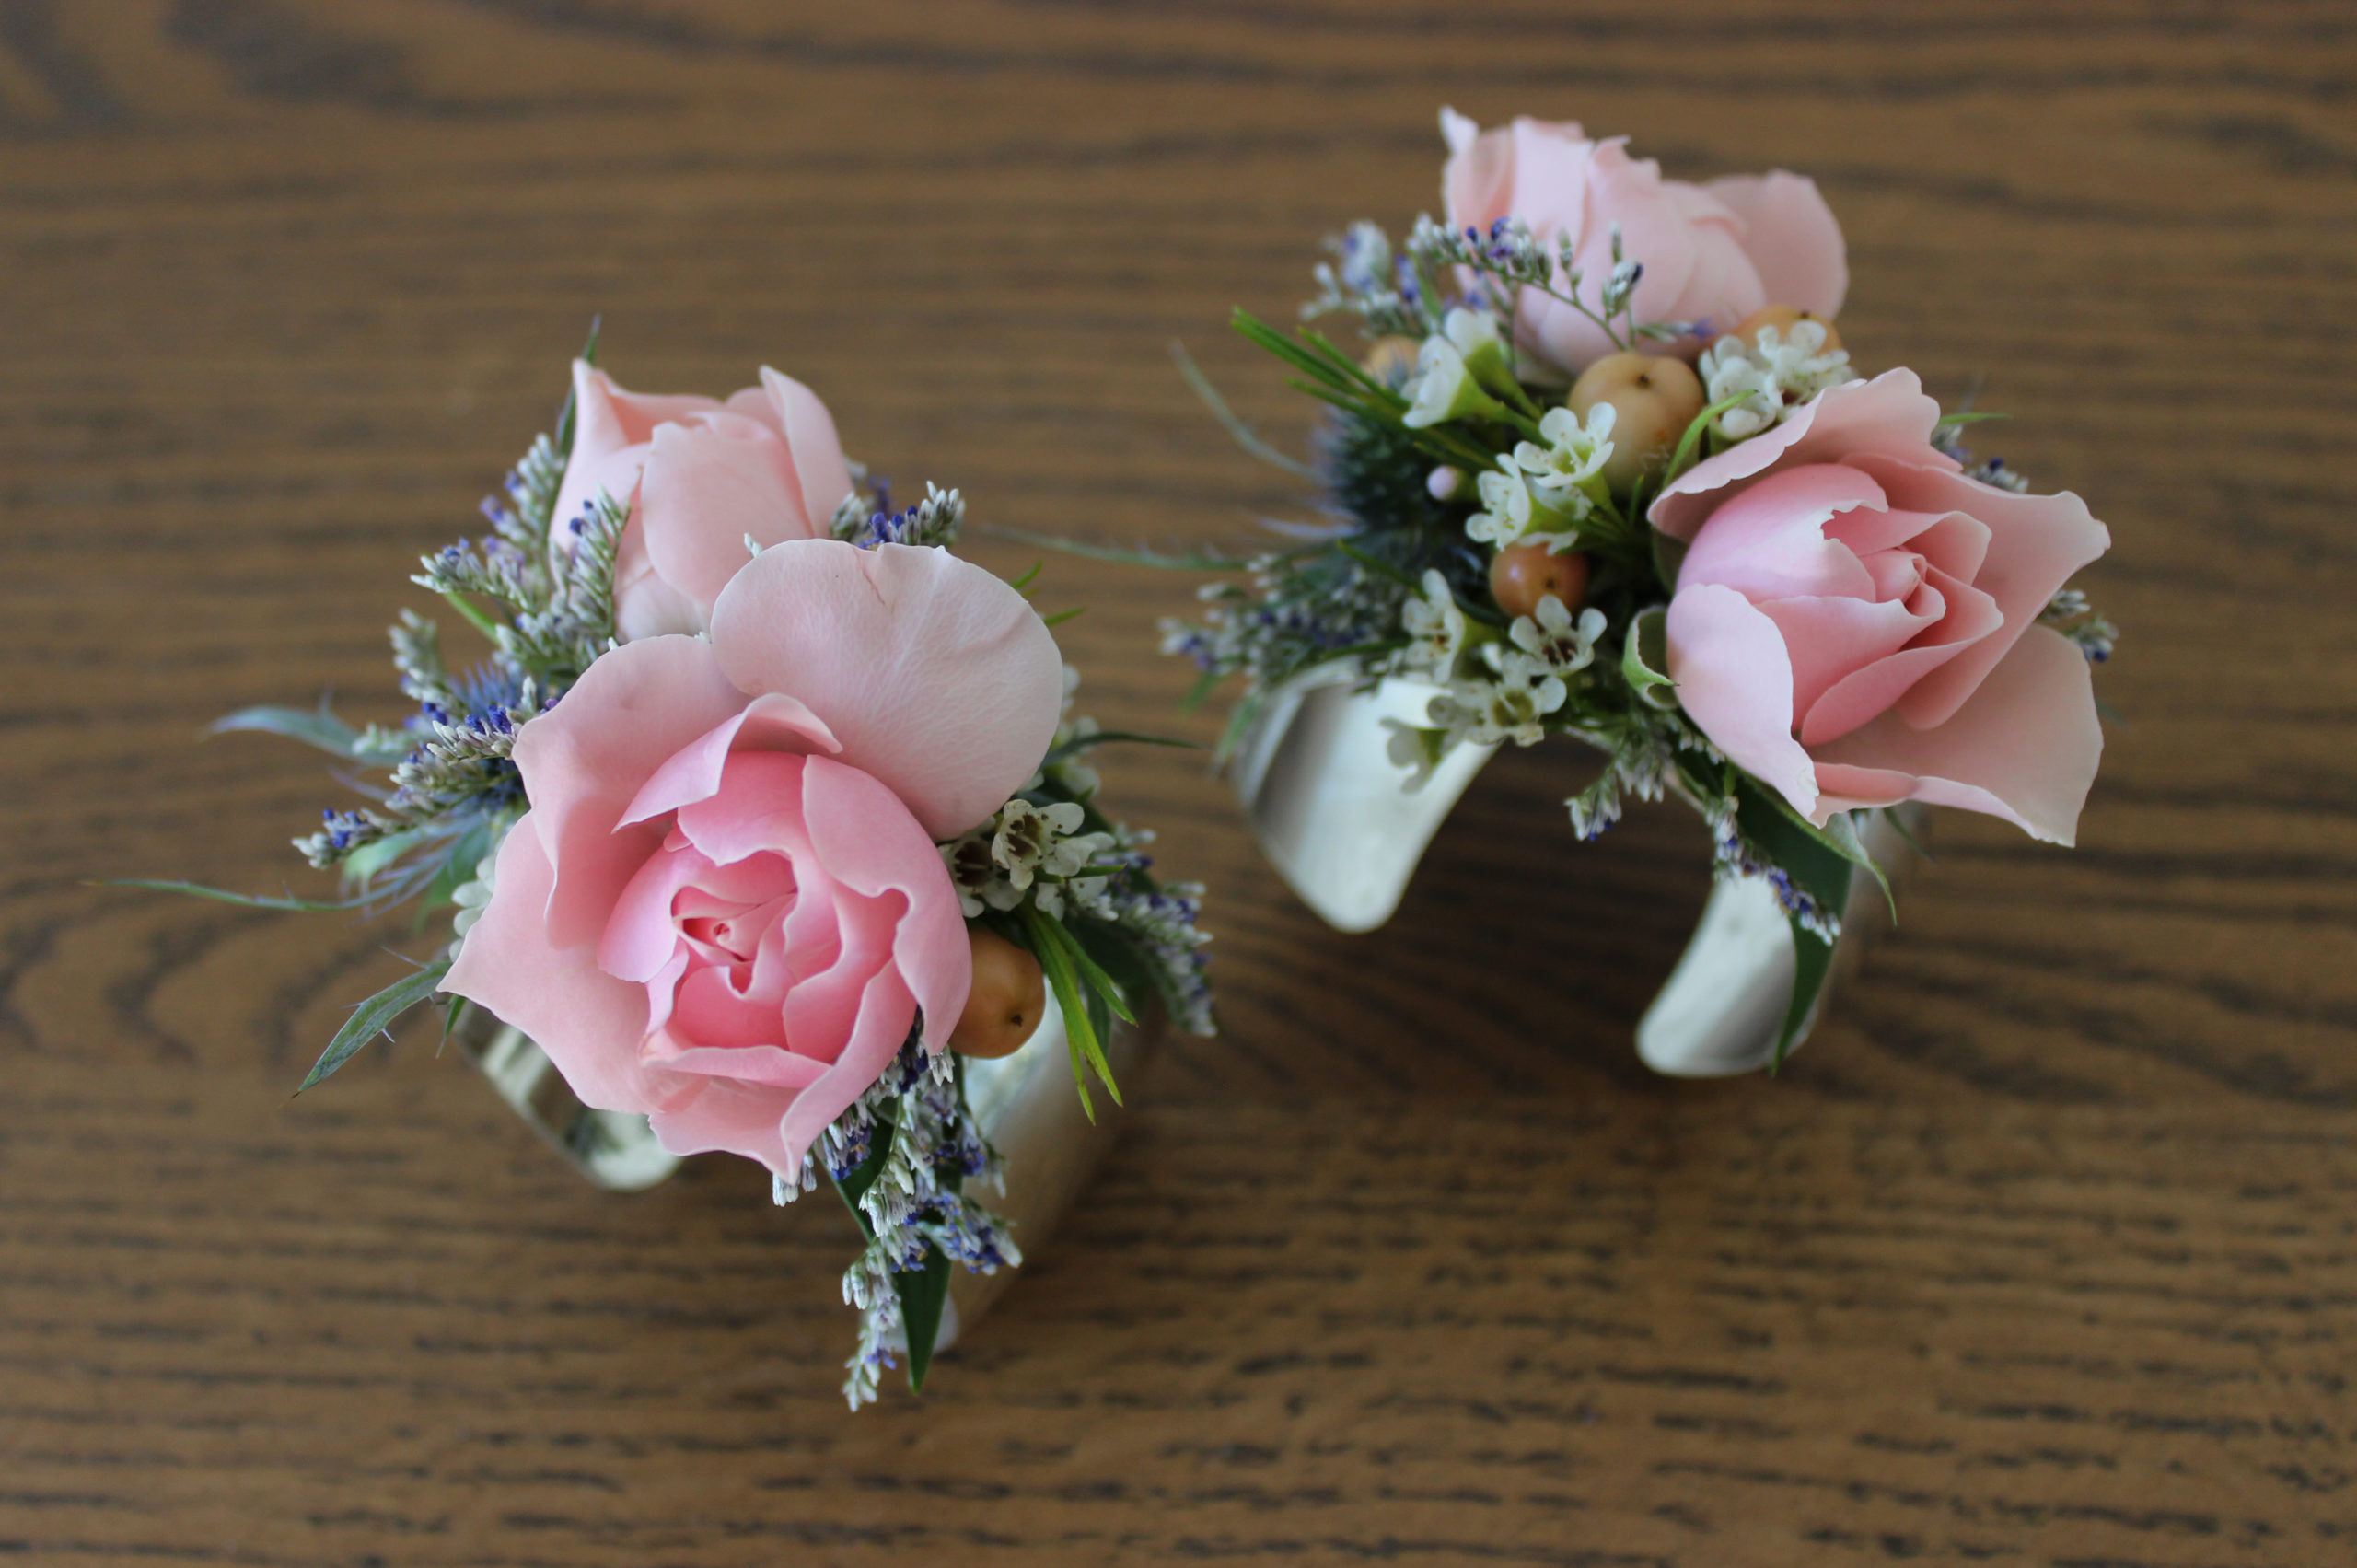 wrist corsages created with pink spray roses, peach hypericum berries, white wax flower, and lavender caspia on a silver cuff bracelet by evansville florist emerald design